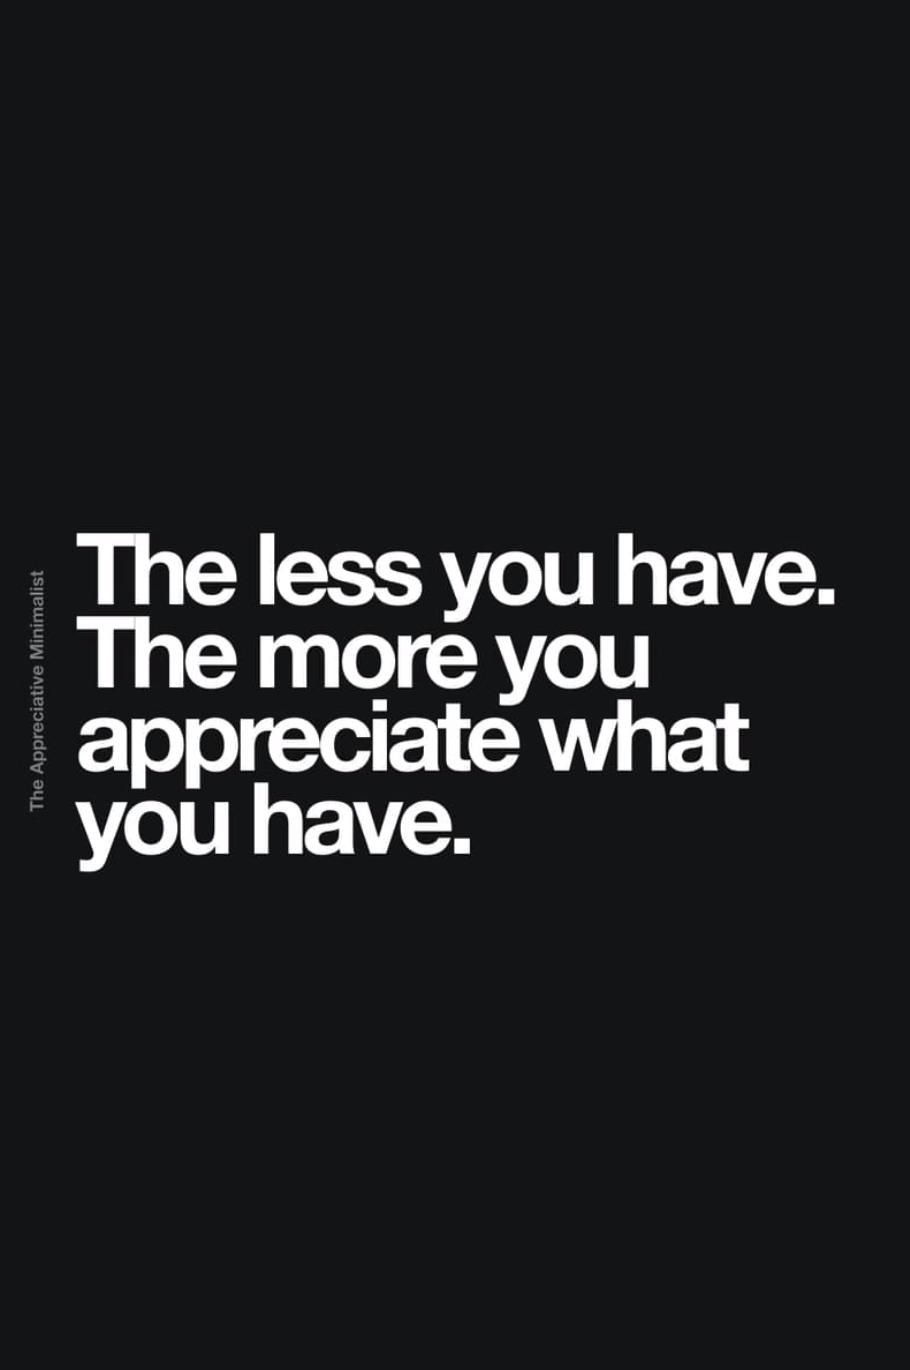 The less you have. The more you appreciate what you have.